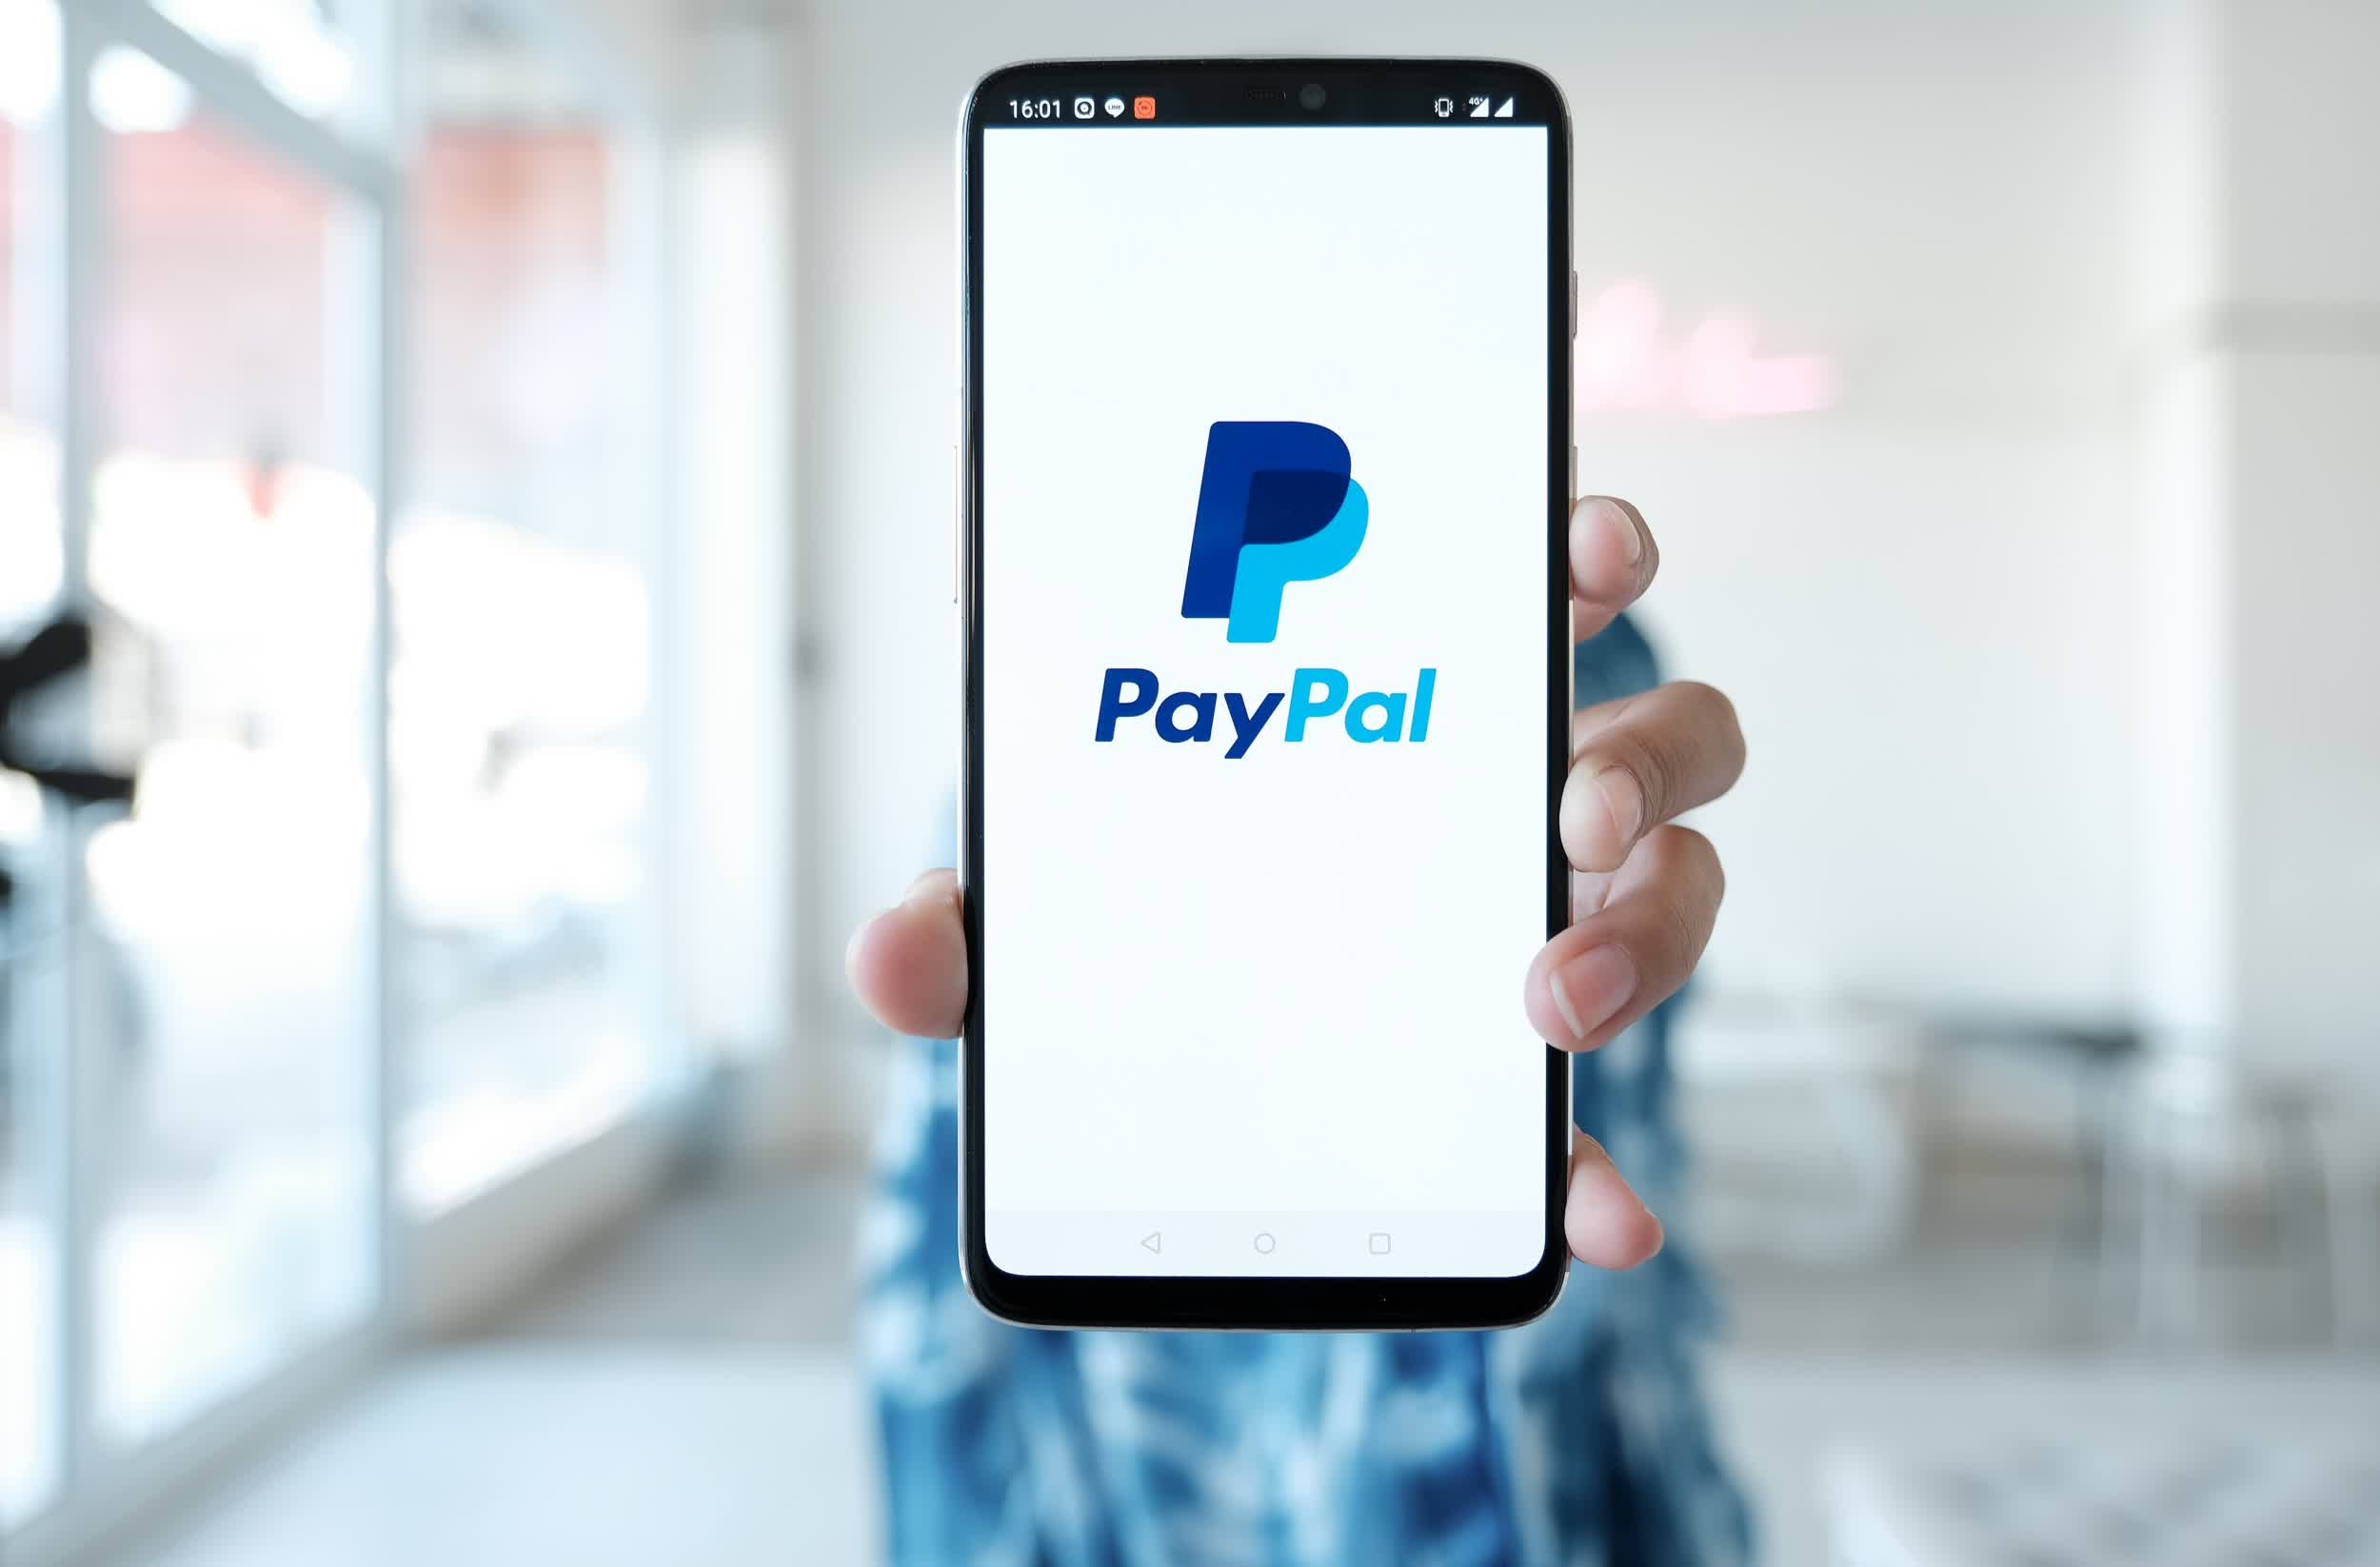 PayPal is working on a cryptocurrency withdrawal function